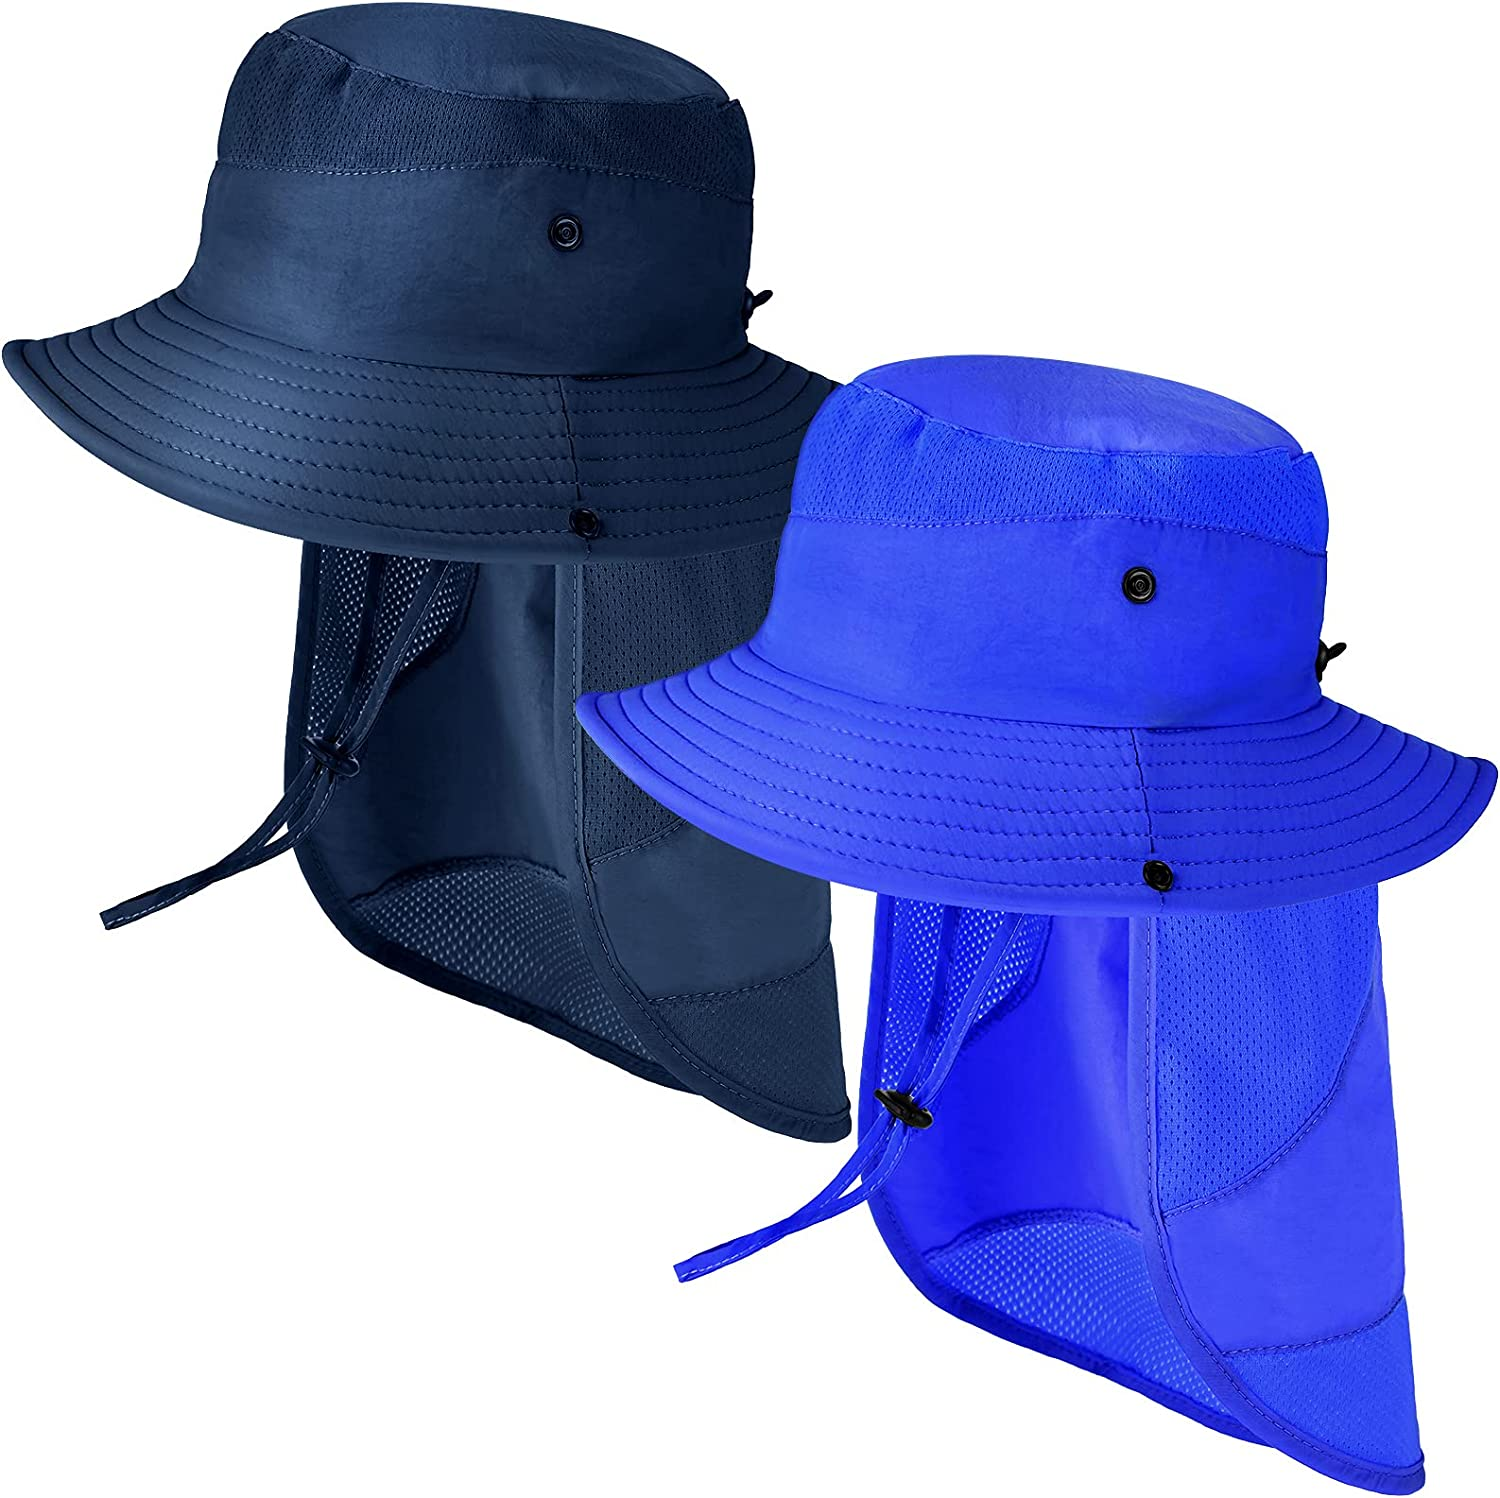 2 Pieces Sun Hat with Removable Neck Flap Beach Cap Adjustable Bucket Hat Summer Hat for Boys Girls